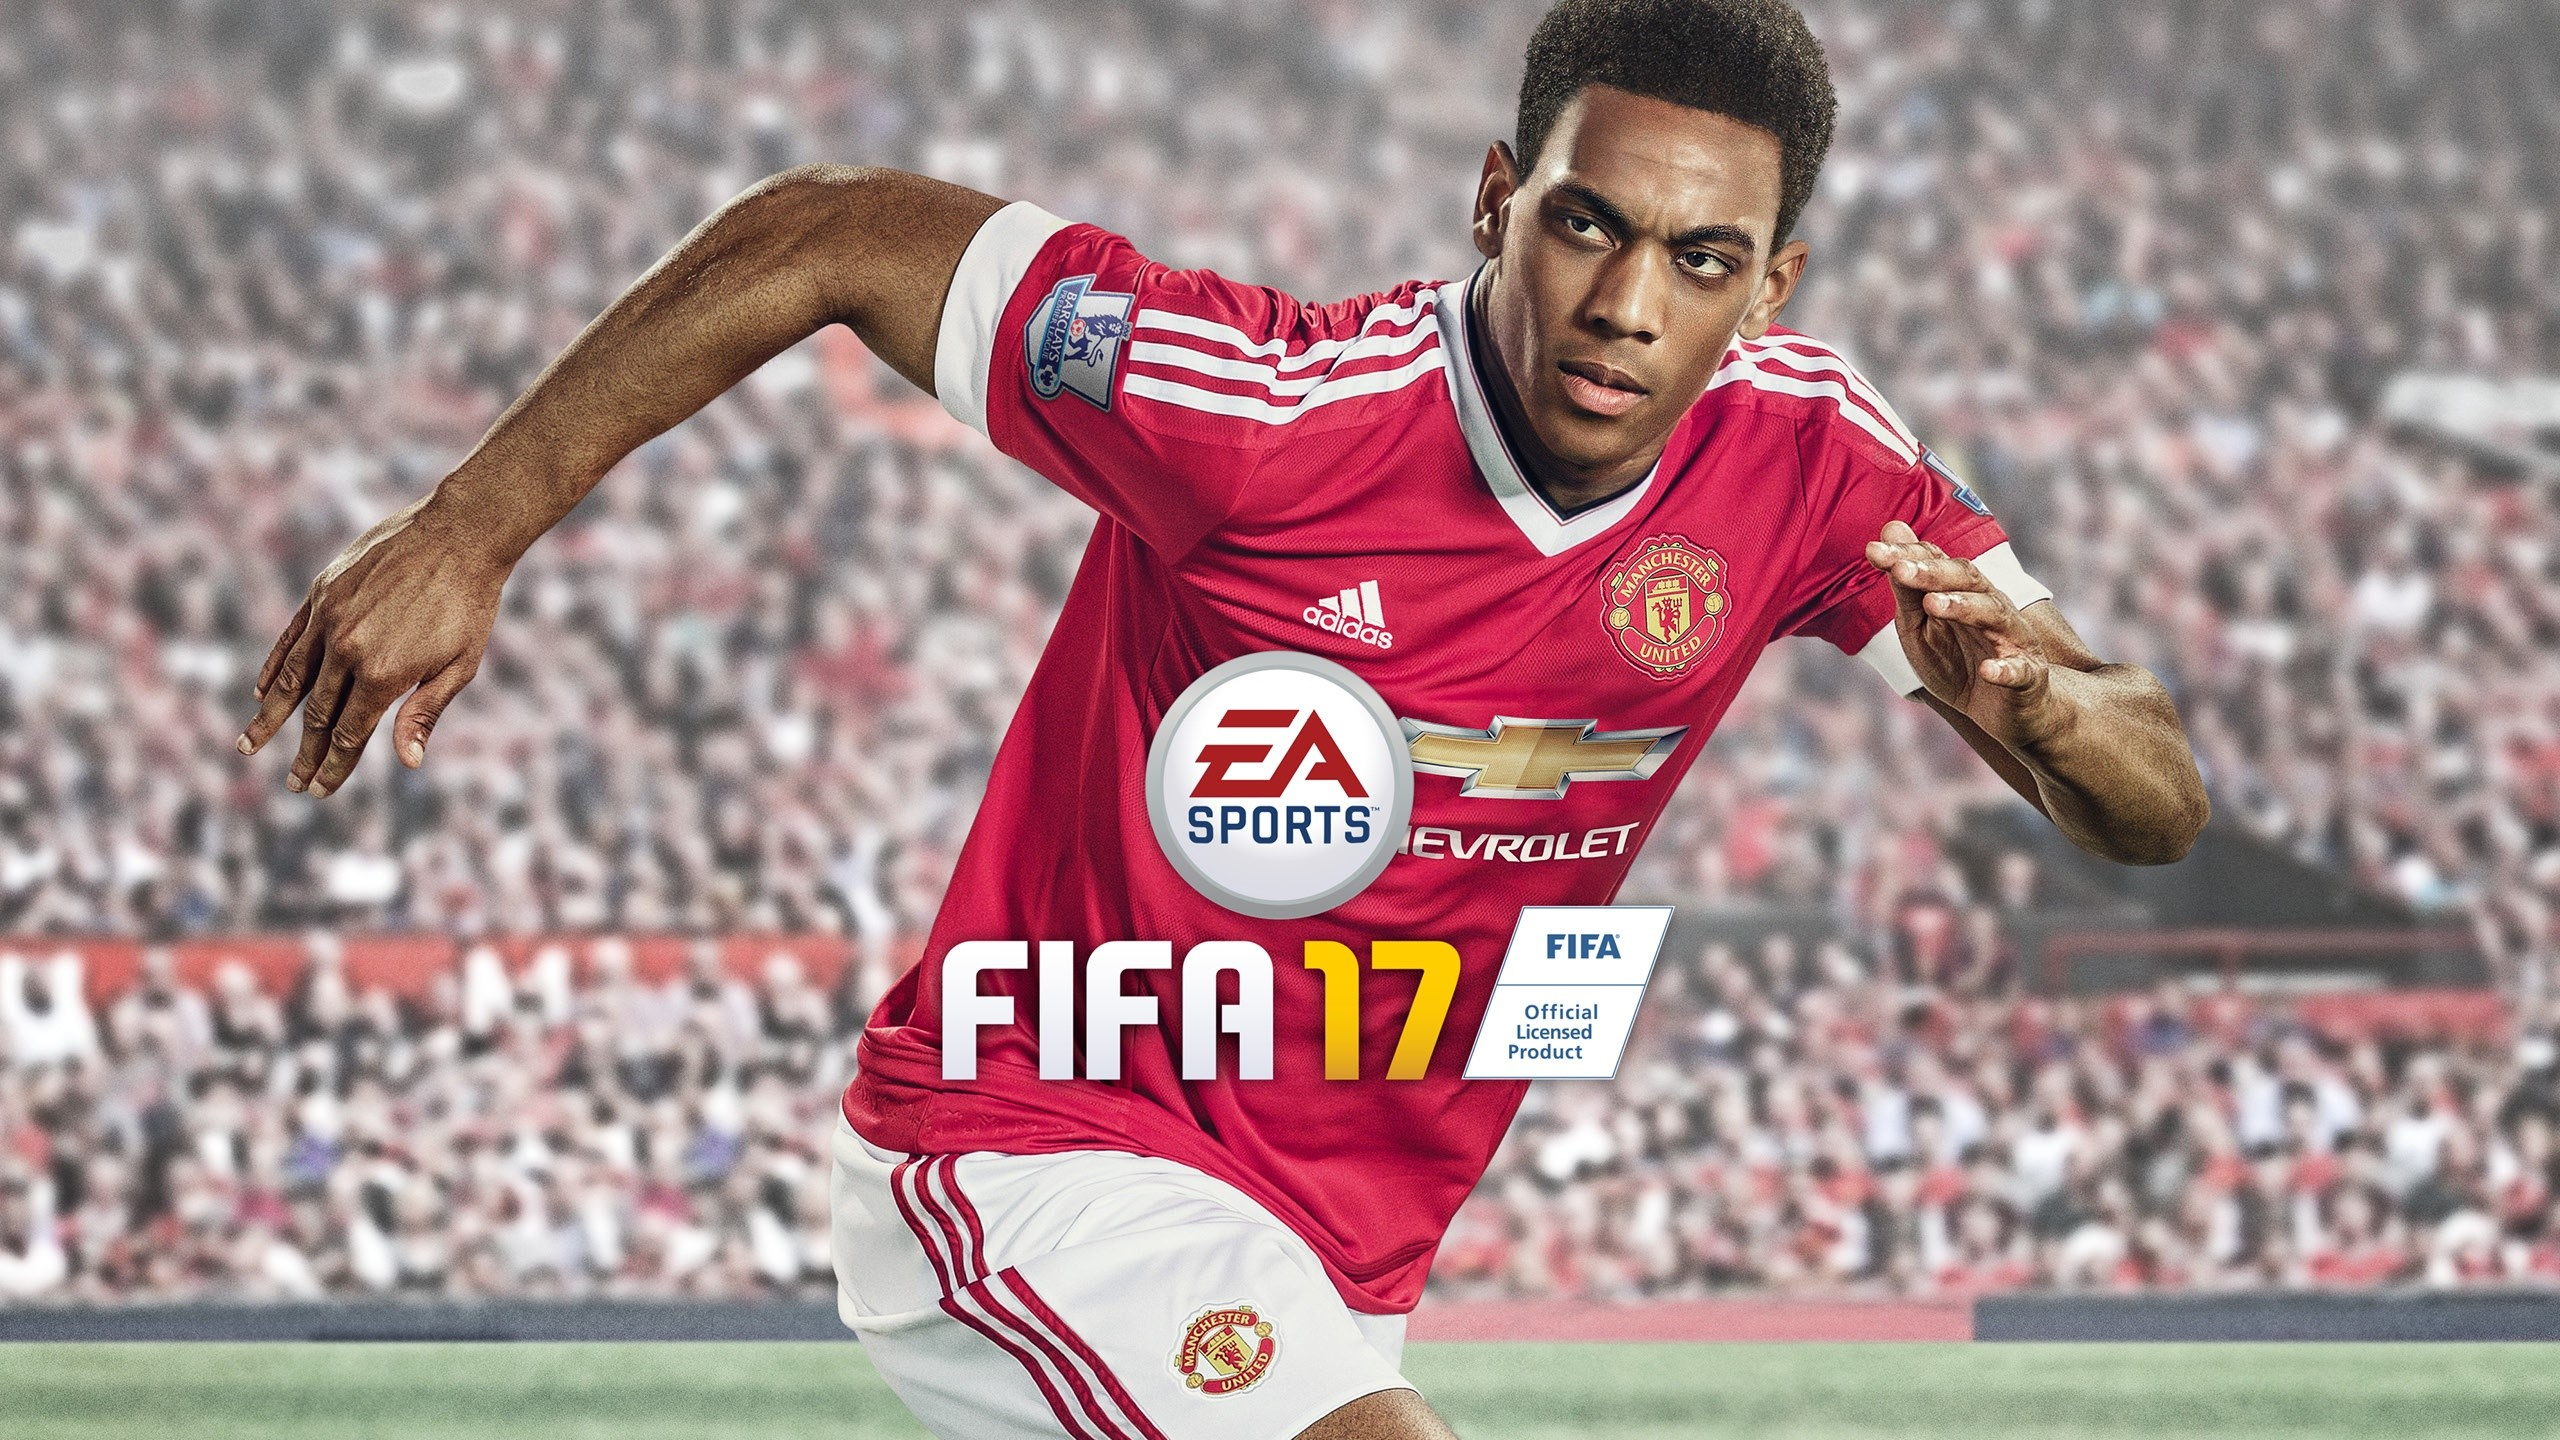 Wallpaper Anthony Martial in Fifa 17